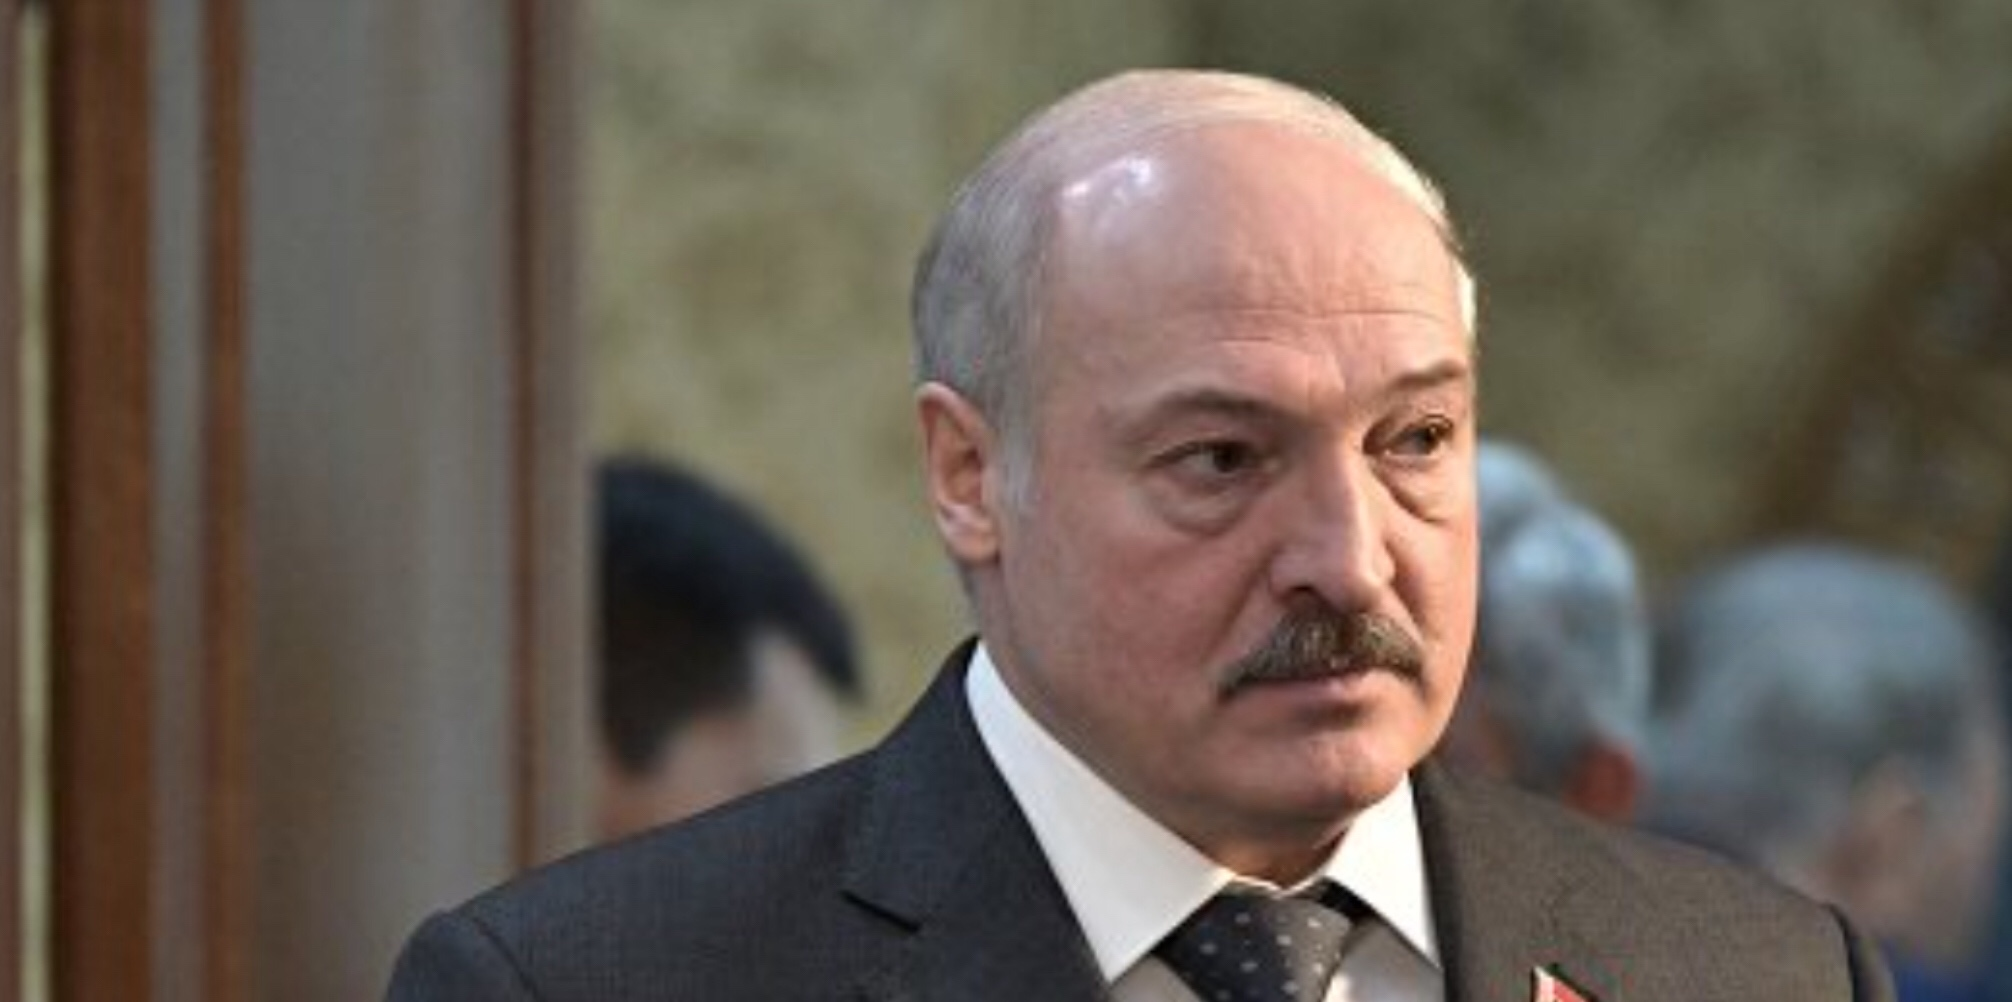 Lukashenko in whirlwind of political crisis